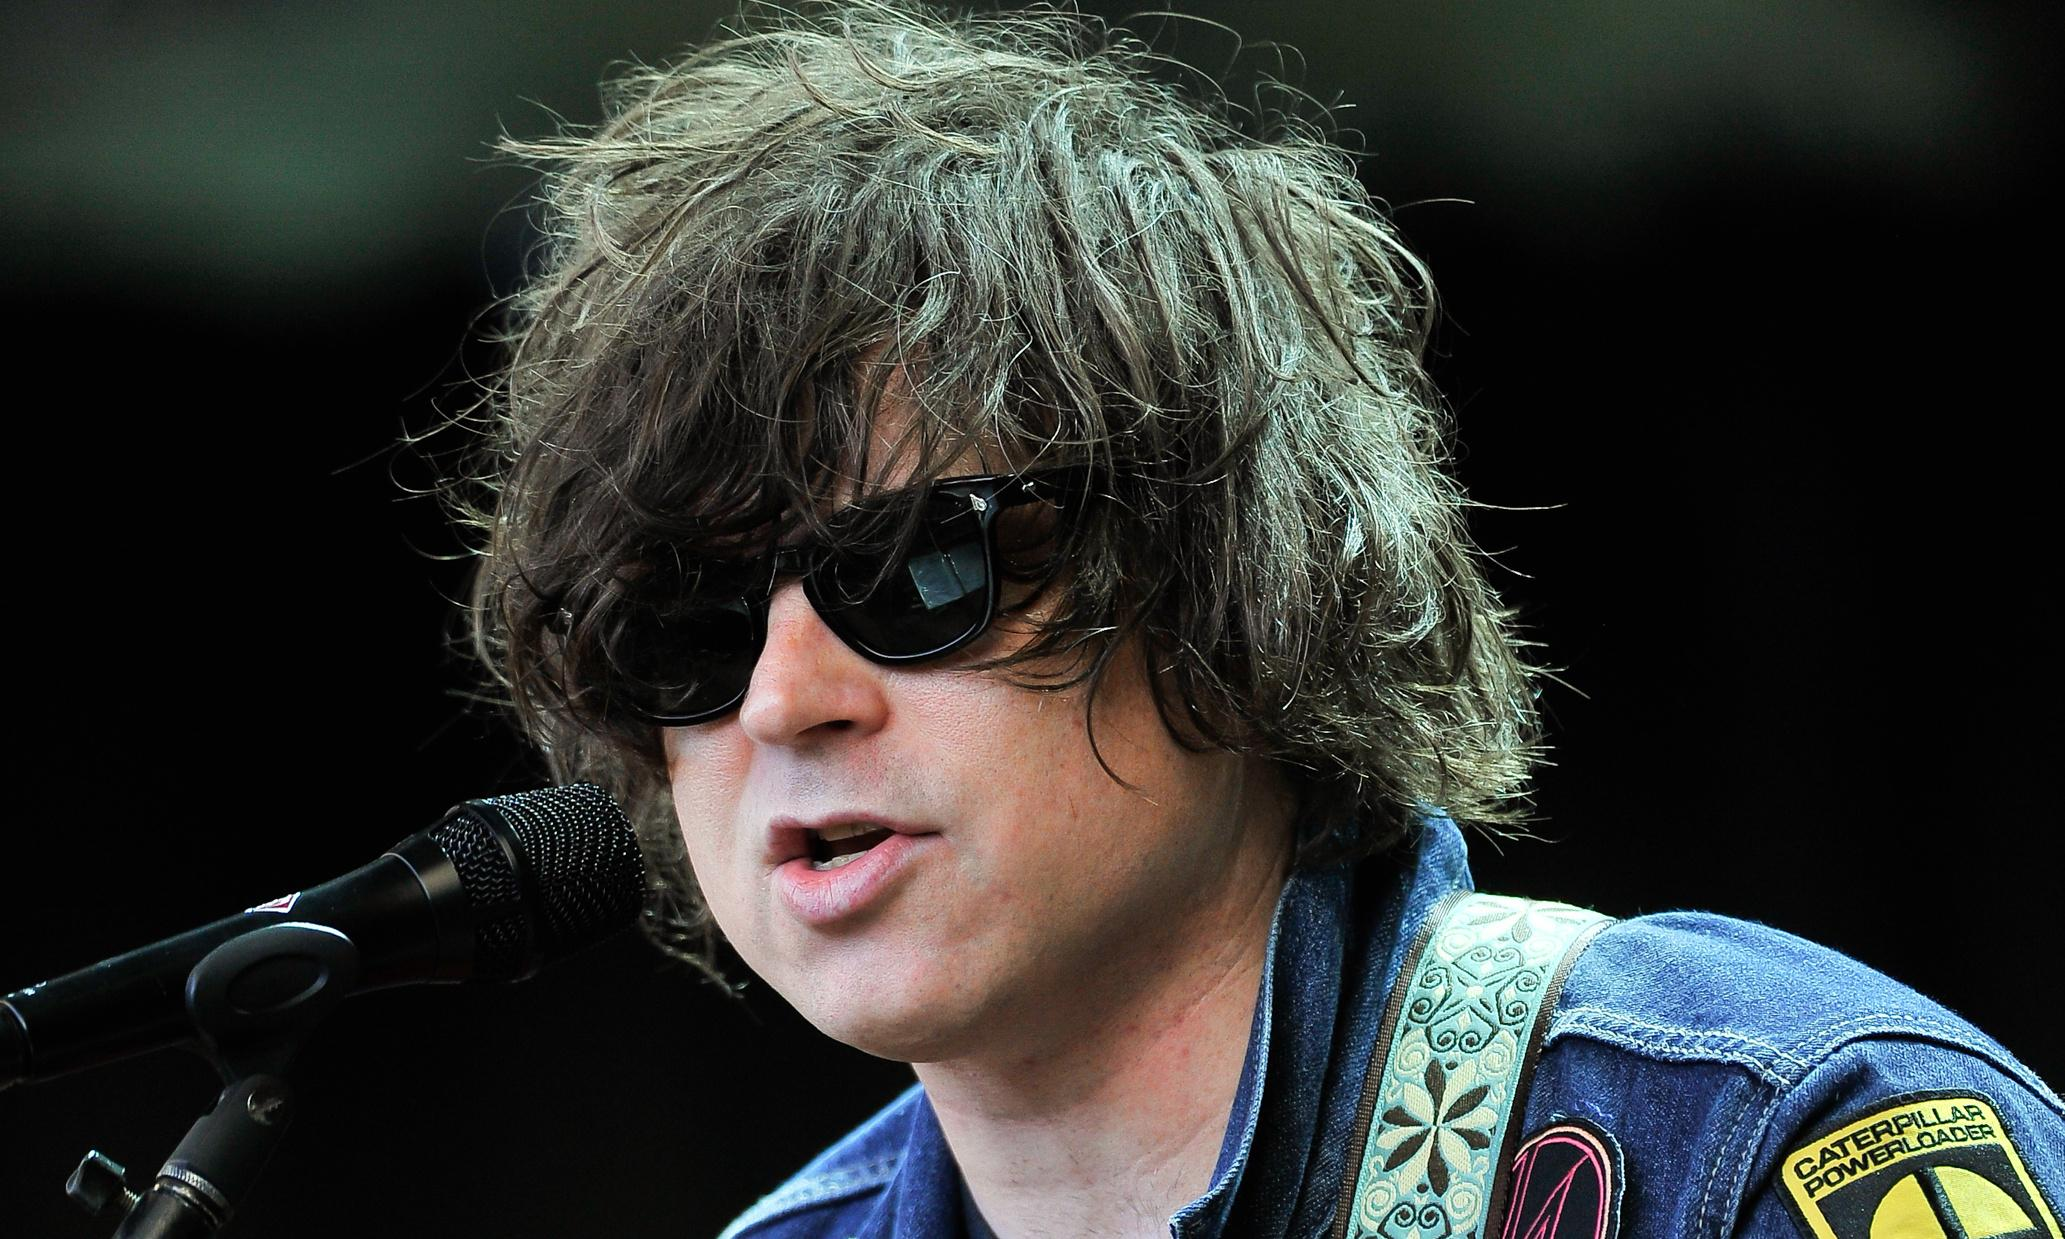 Musicians voice concern over Ryan Adams' abuse allegations